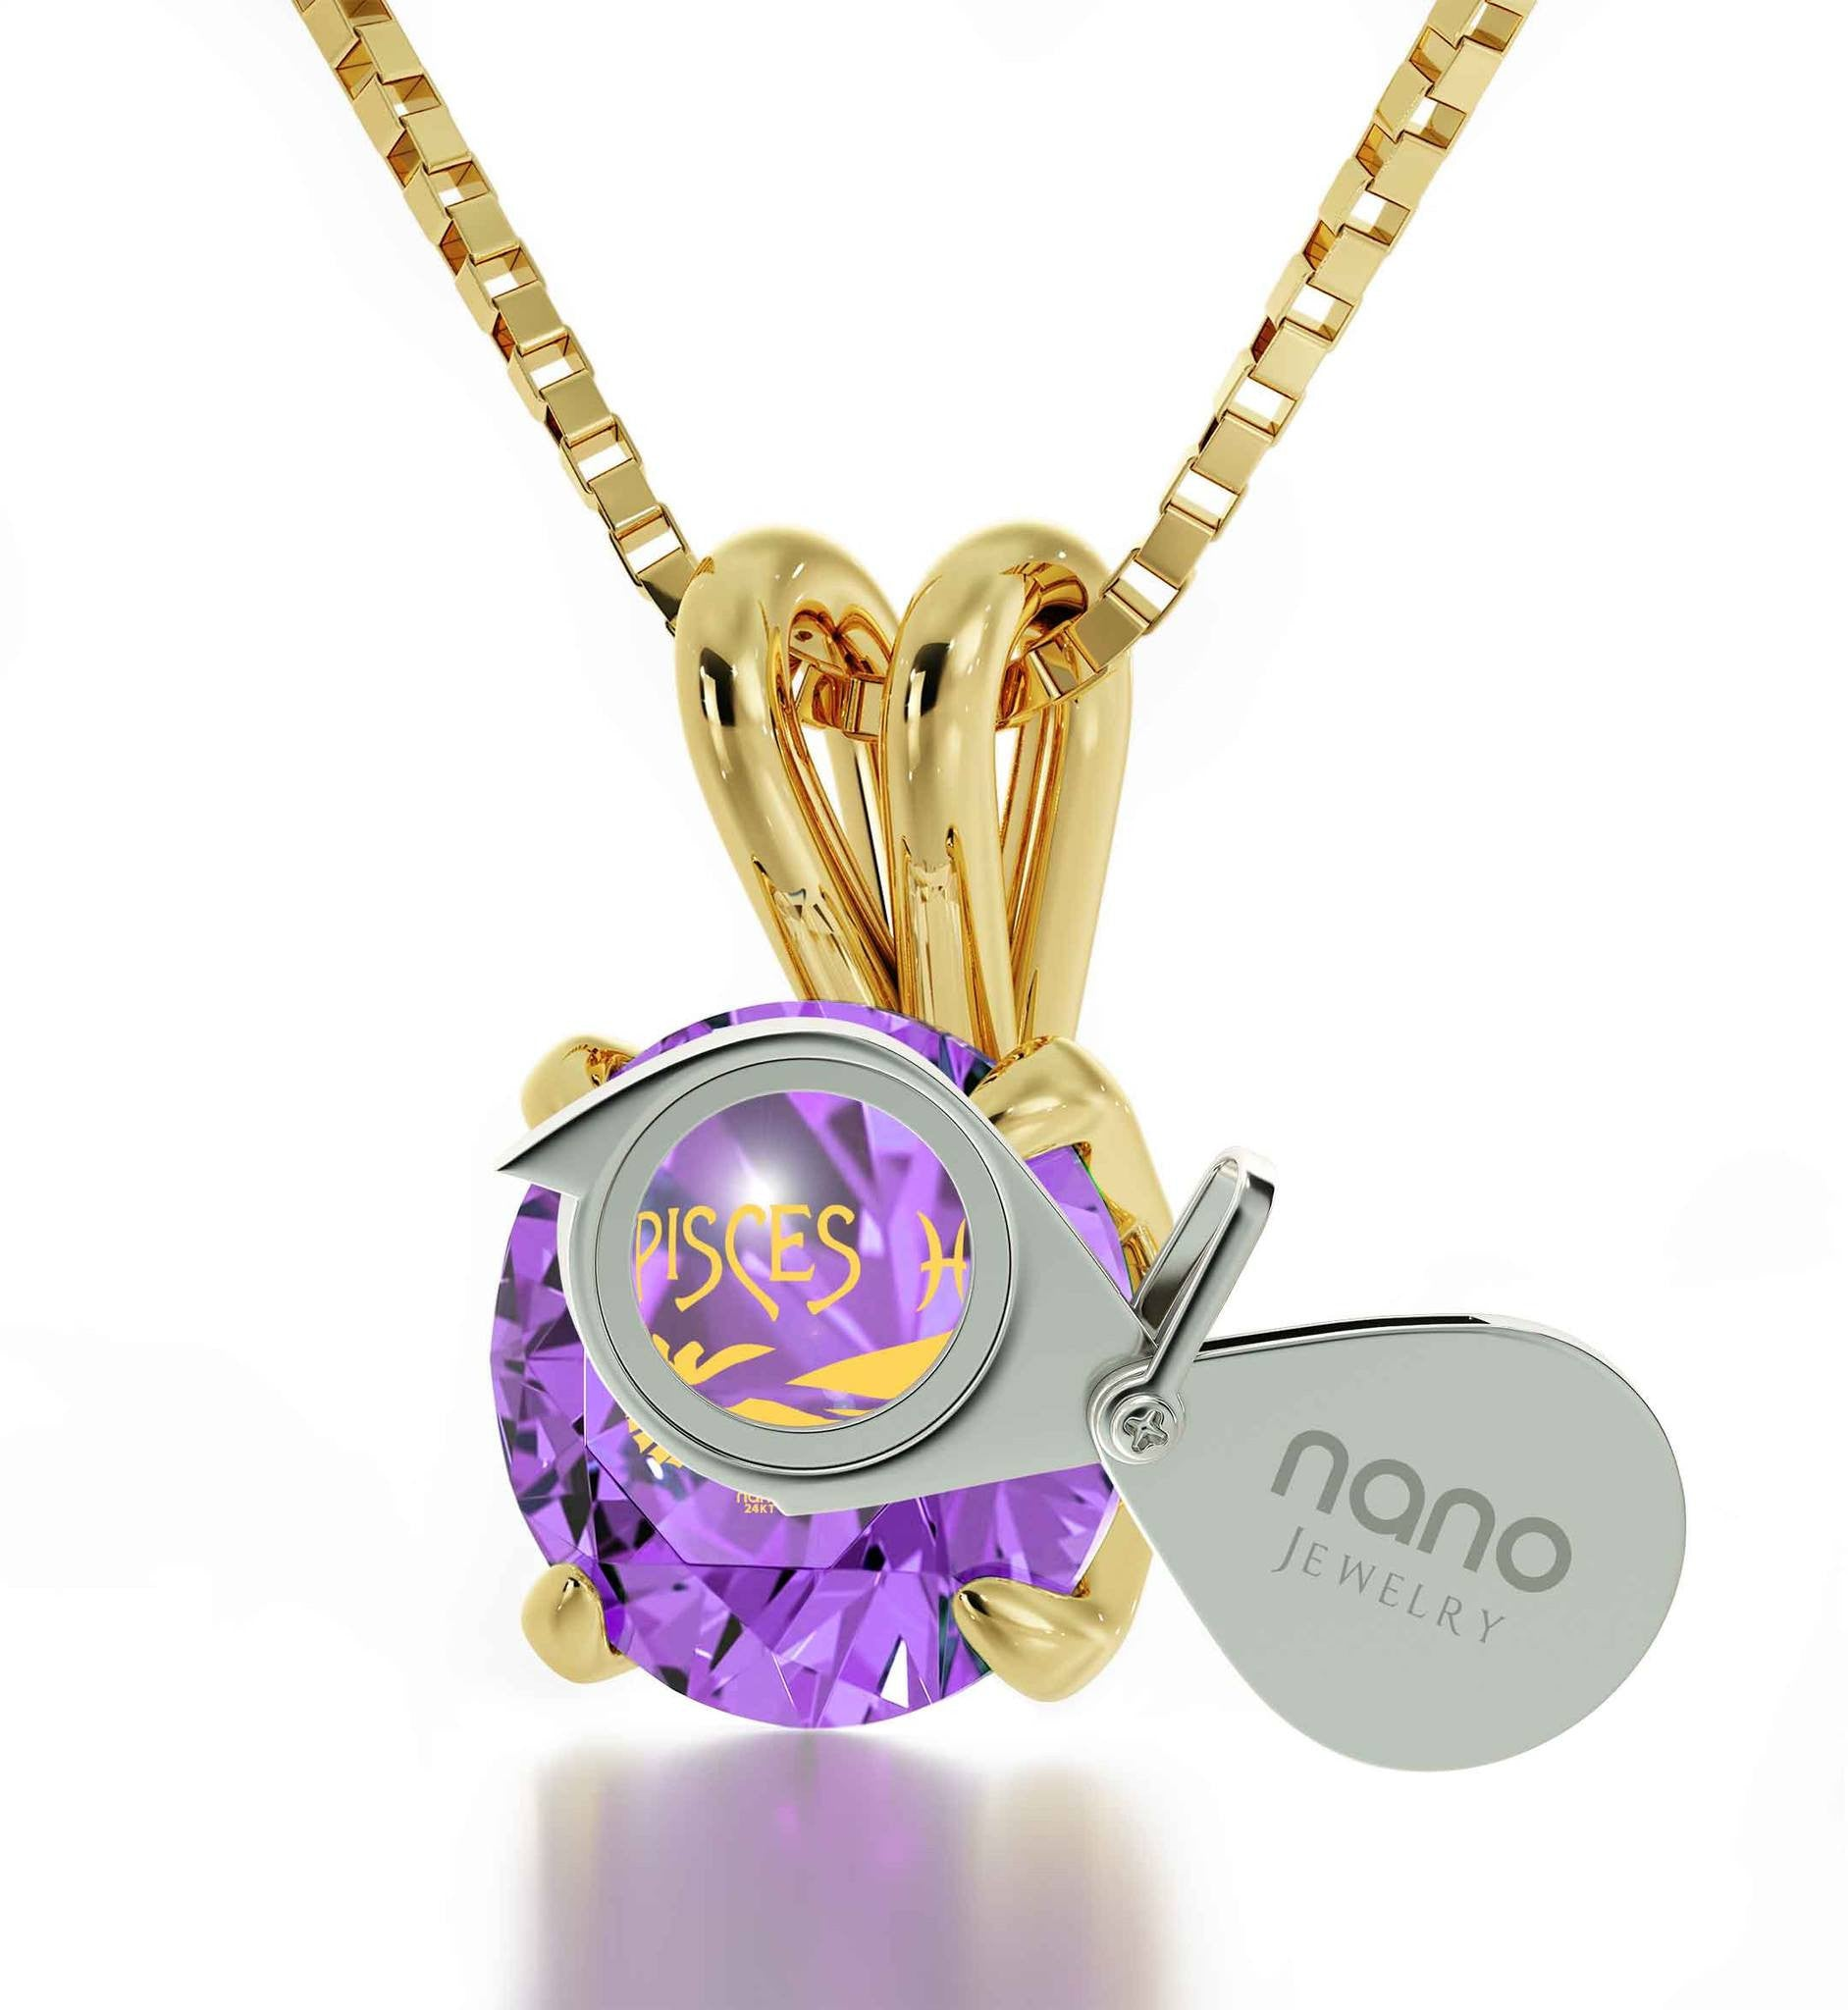 """Christmas Present Ideas for Girls, Zodiac Sign Necklace, Purple Stone, Jewelry Good Anniversary Gifts for Her by Nano"""